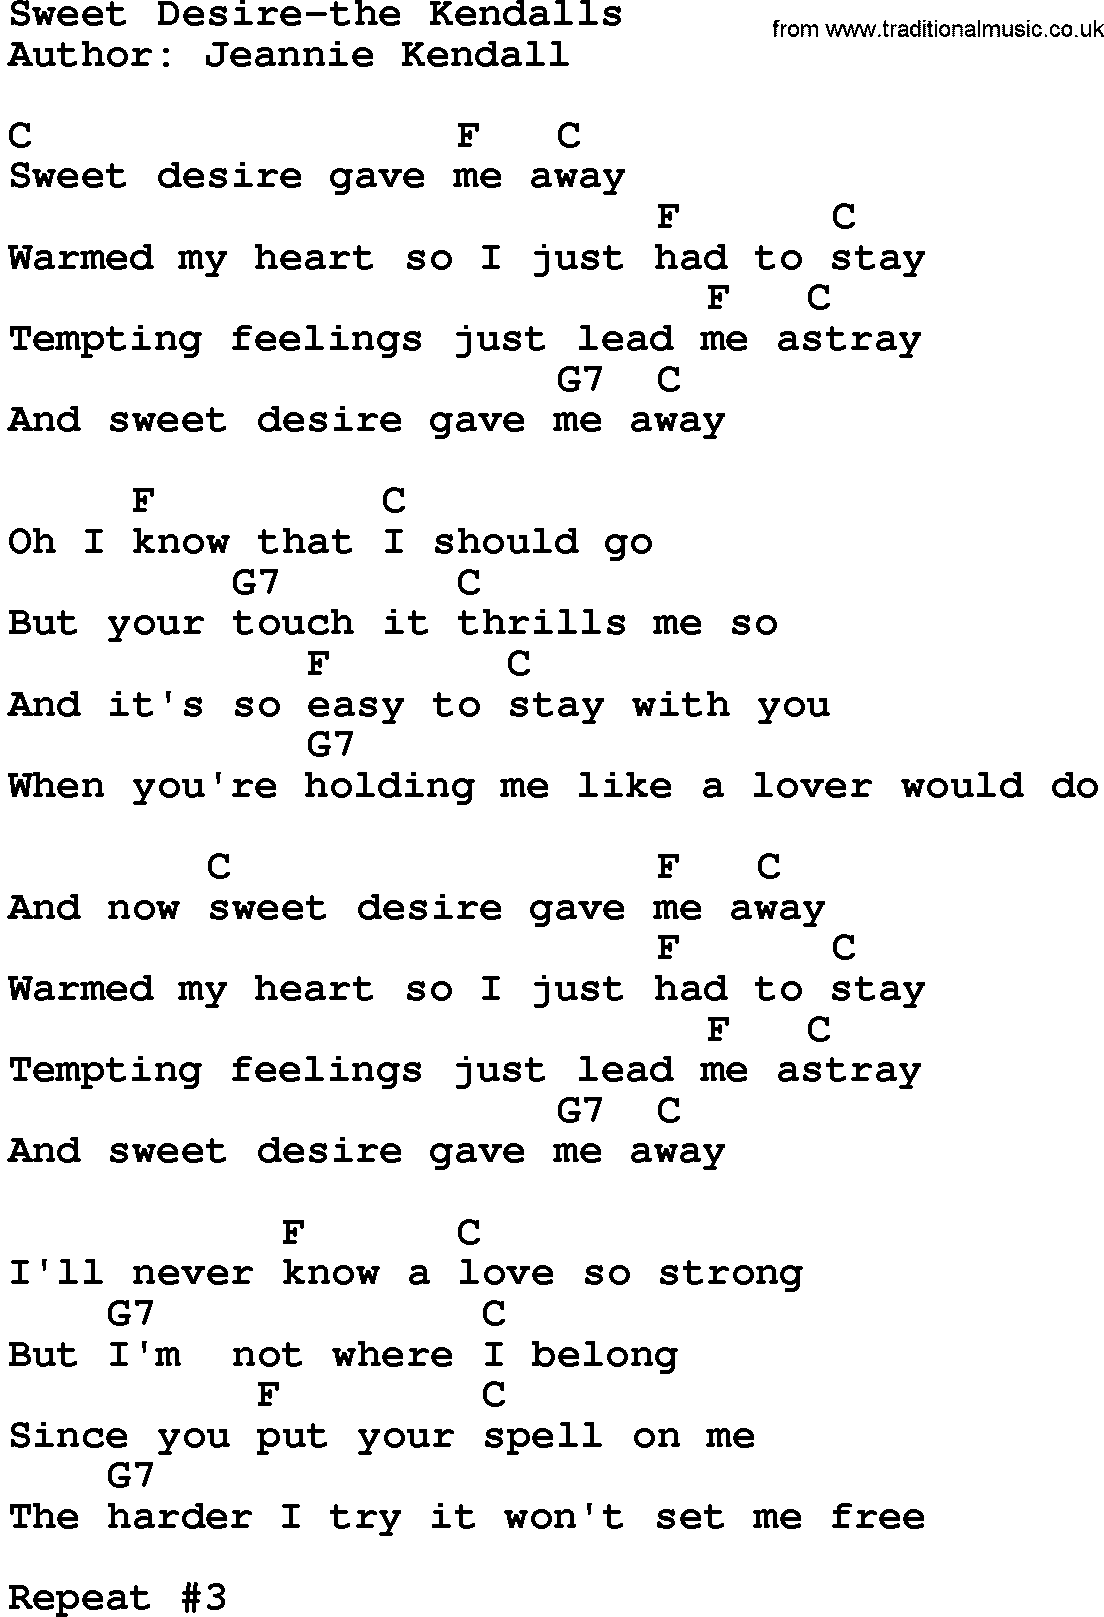 country music sweet desire the kendalls lyrics and chords